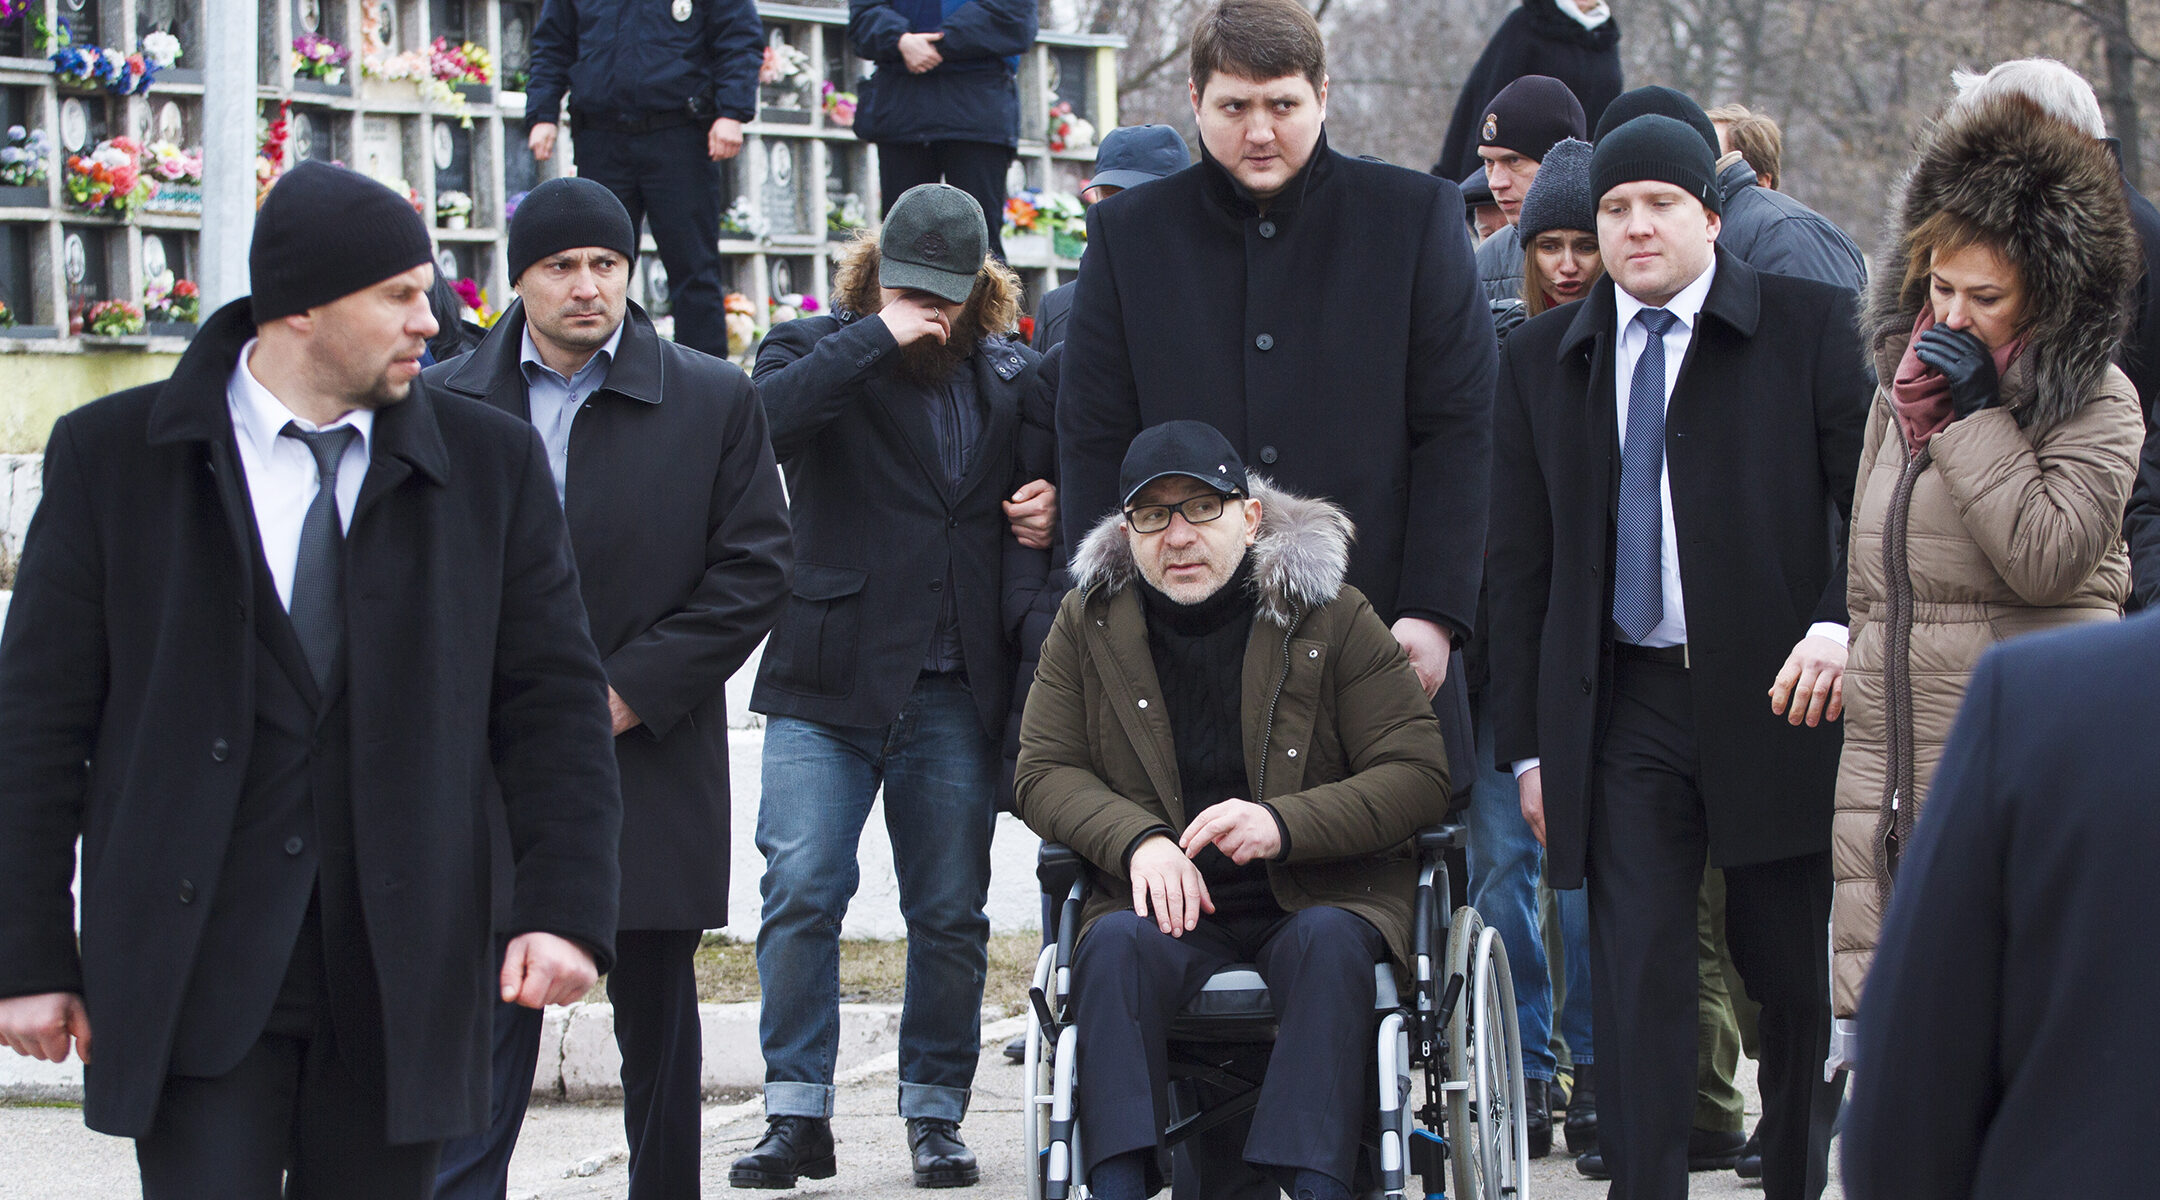 Gennady Kernes, in a wheelchair, attends the funeral of his associate and close friend, businessman Yuri Diment, at the Jewish cemetery of Kharkiv, Ukraine on Feb. 26, 2016. (Konstantin Cherginsky/TASS via Getty Images)